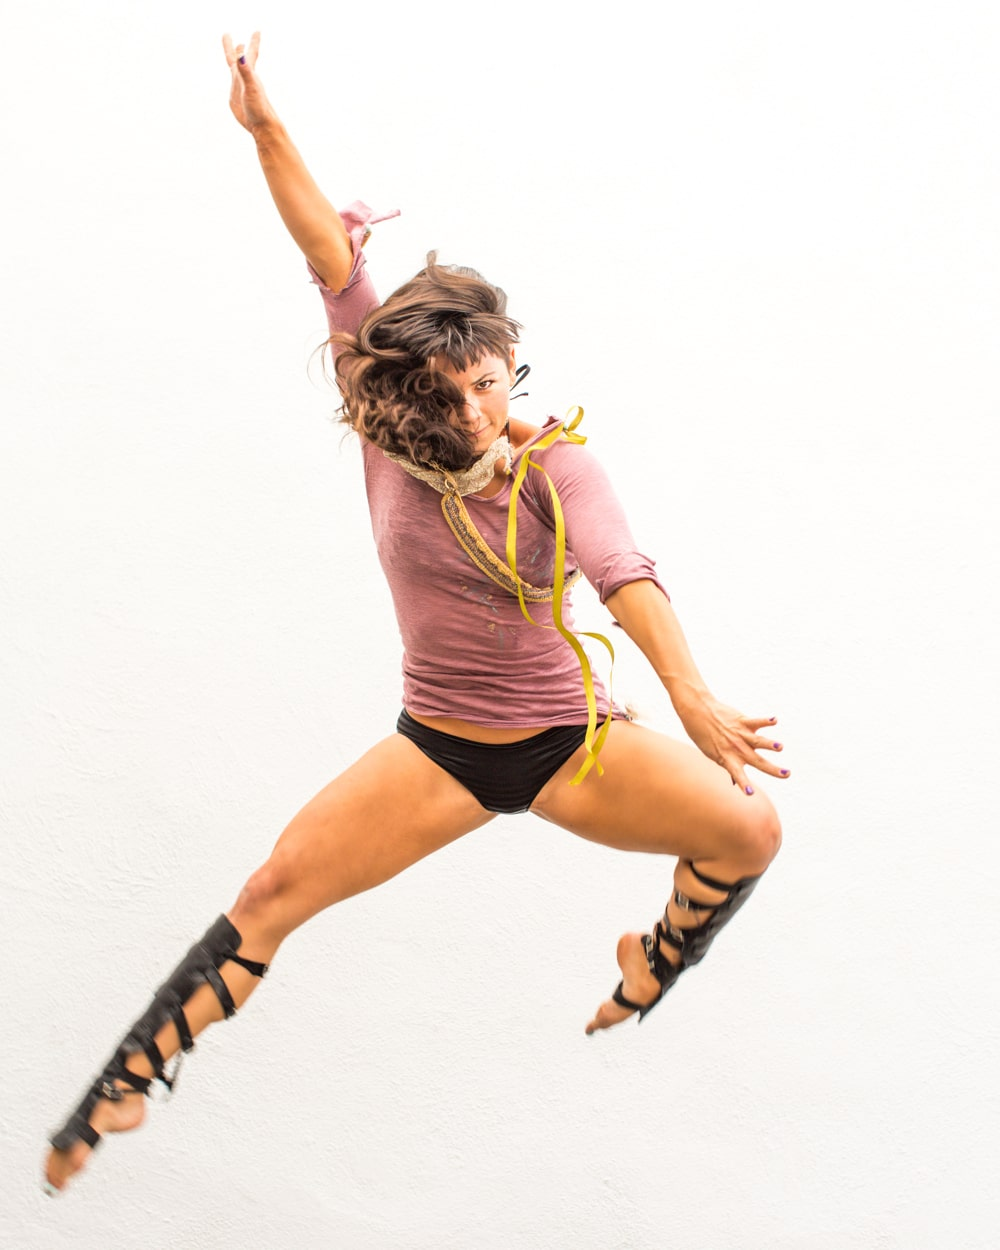 pole_couture_photos_by_gregory_beylerian-11